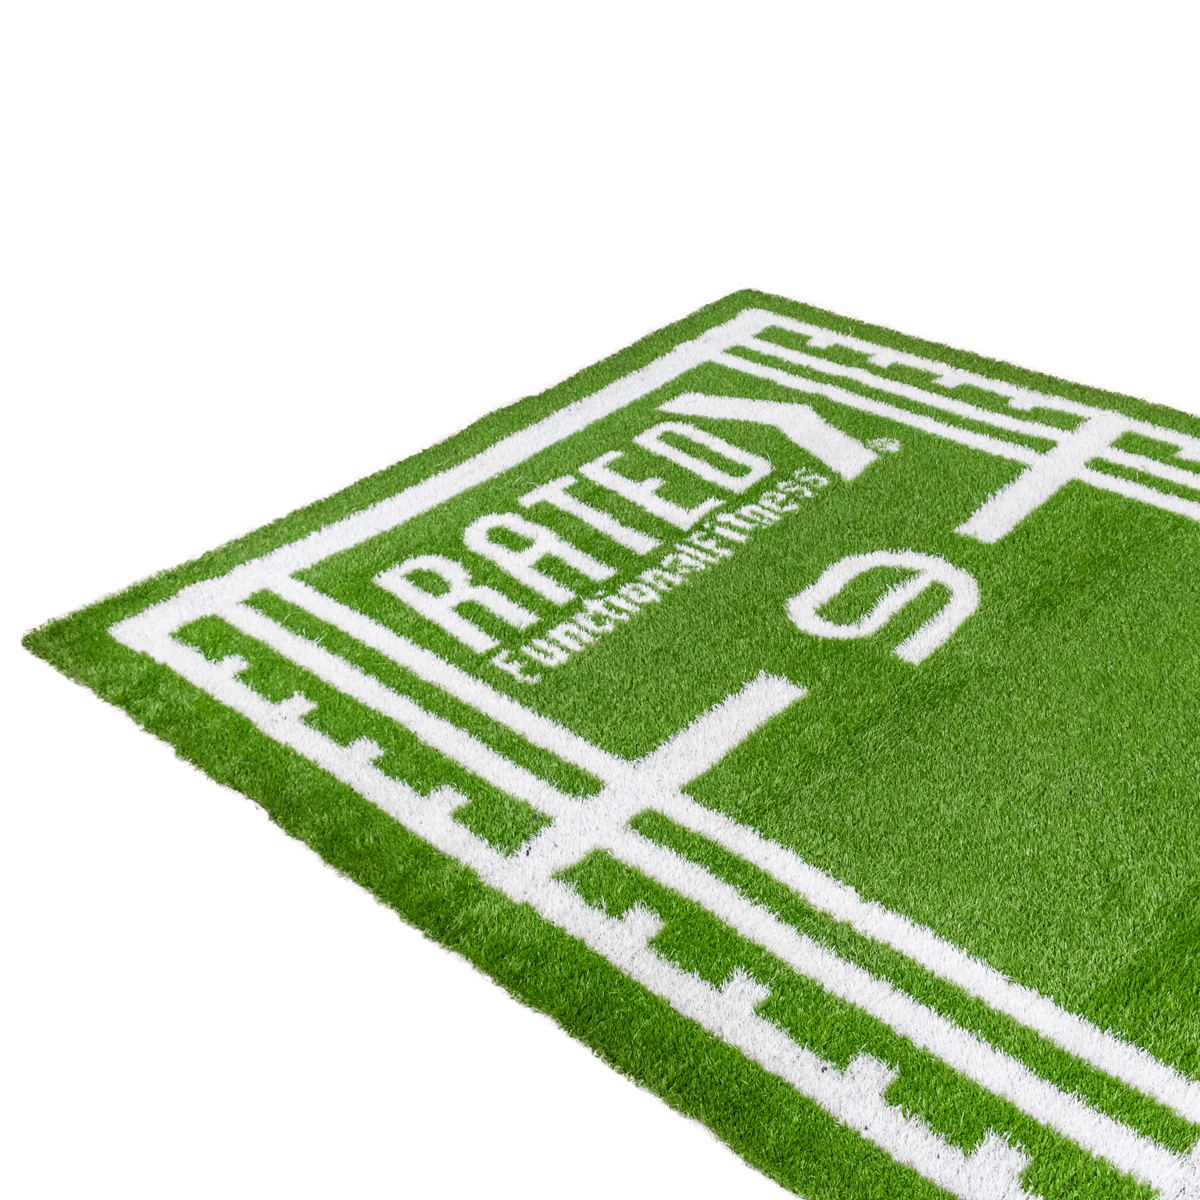 Astro Turf by Renouf Fitness